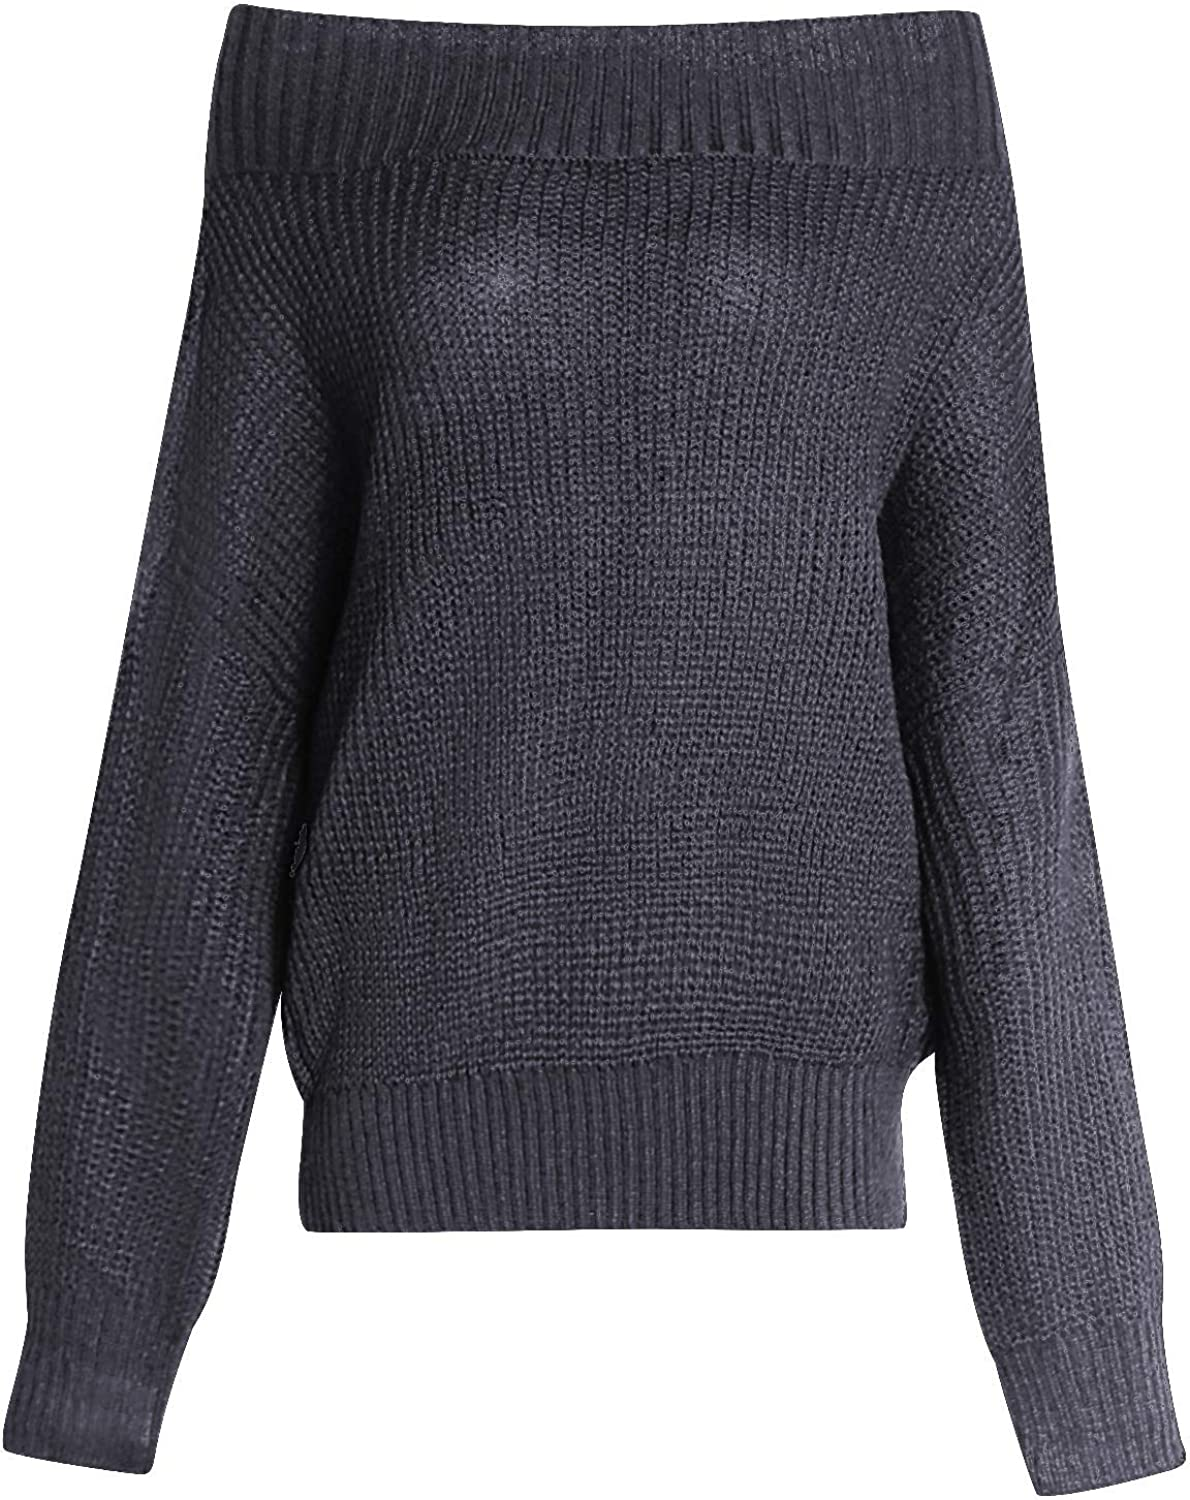 INIBUD Women Off Shoulder Sweater Batwing Sleeve Pullover Oversized Knit Sweaters Oversized Long Sleeve Tops